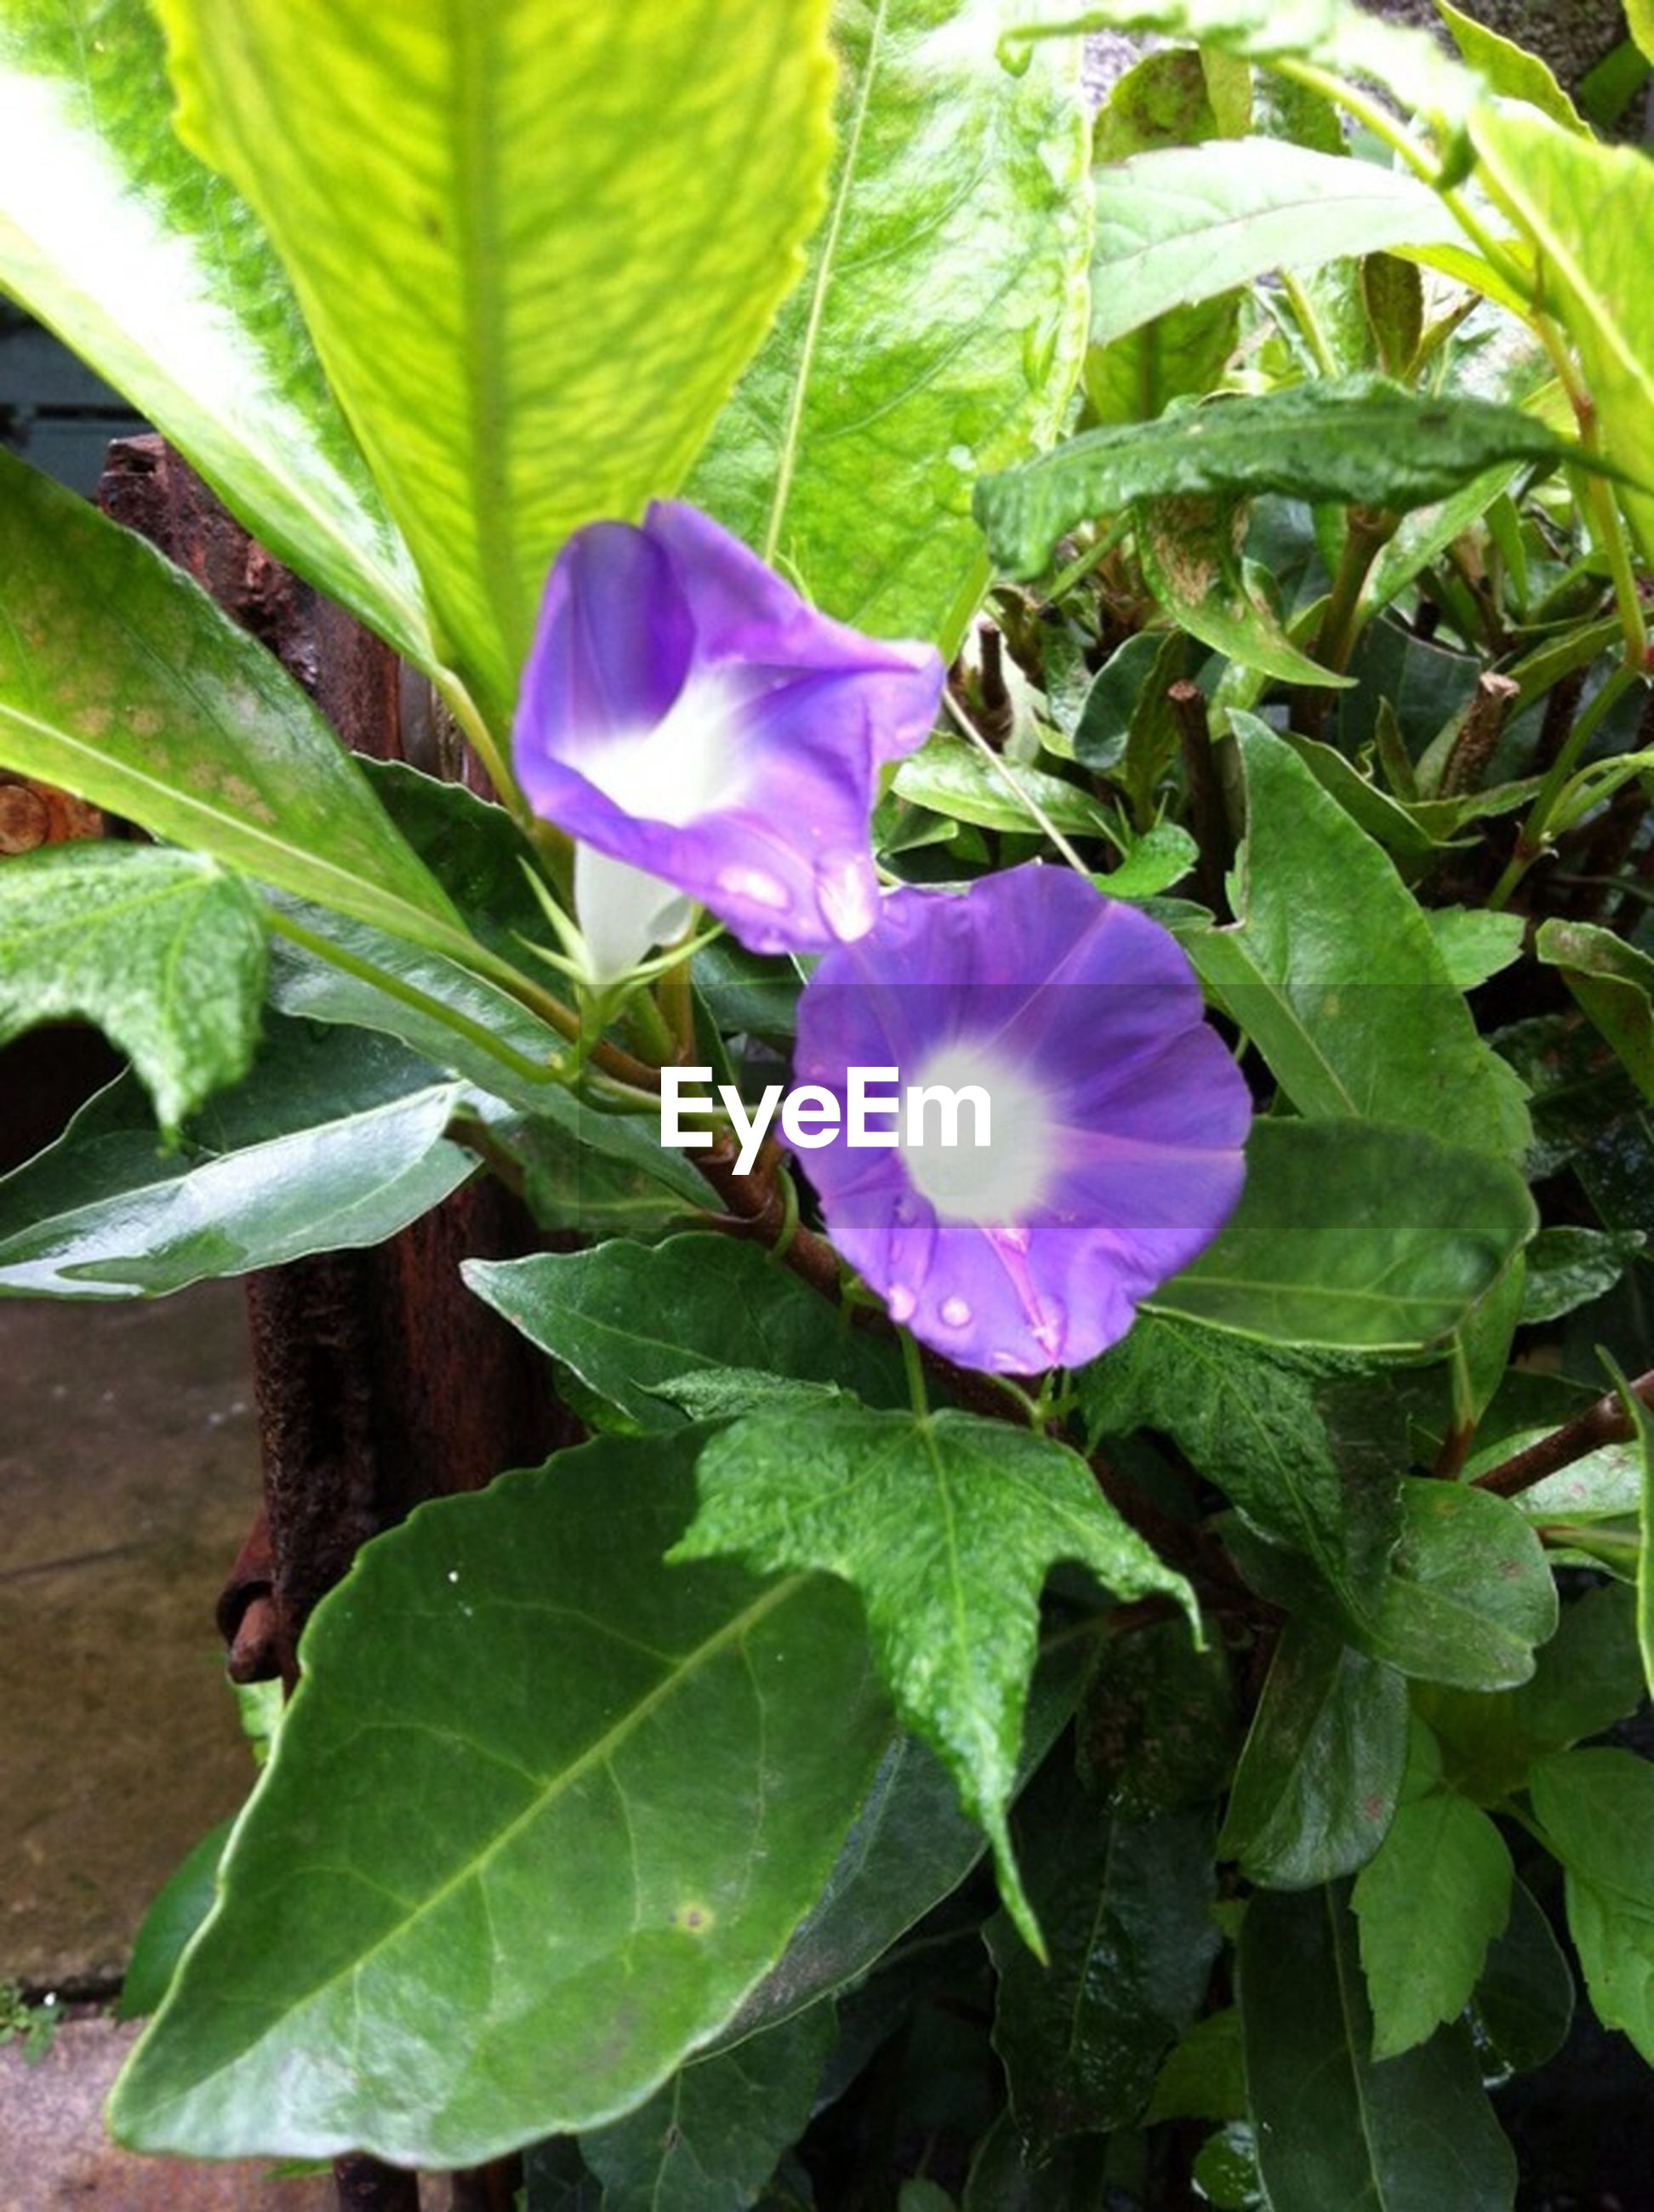 flower, leaf, freshness, growth, petal, fragility, purple, beauty in nature, plant, flower head, green color, nature, close-up, blooming, single flower, in bloom, botany, blossom, stem, no people